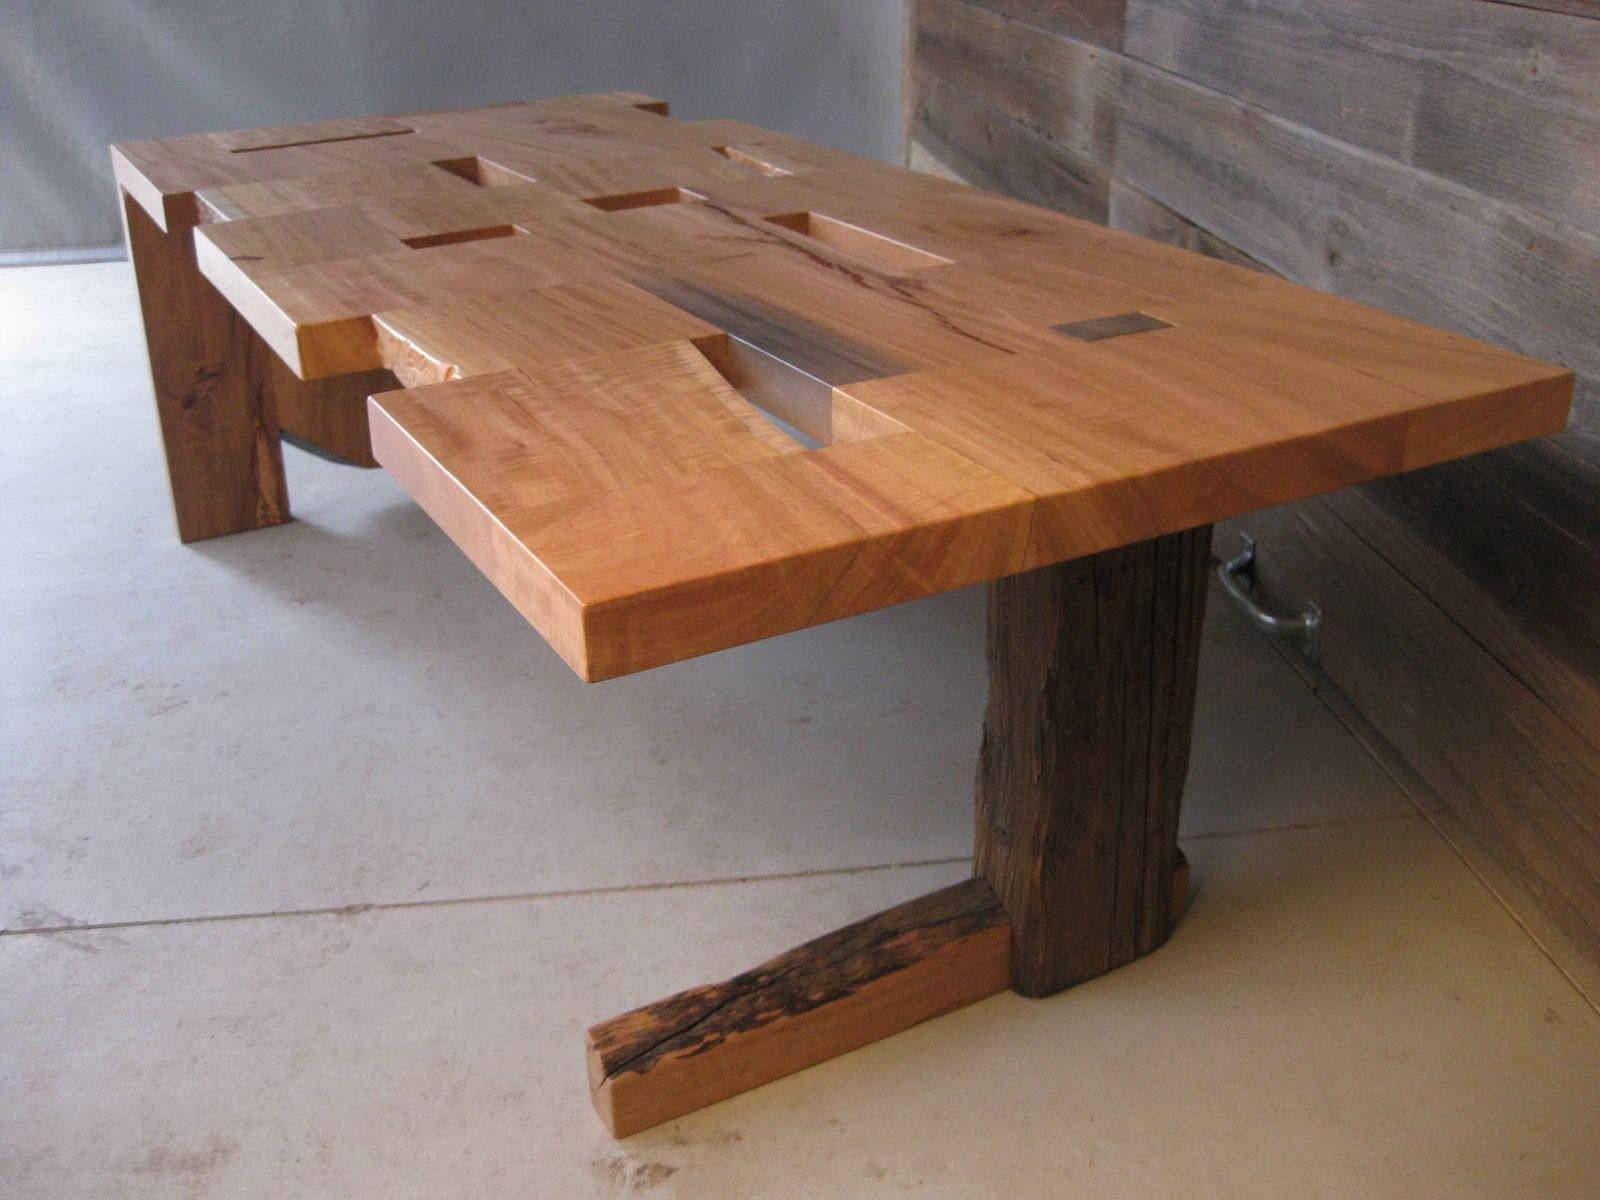 Handmade fcut Coffee Table by San Diego Urban Timber